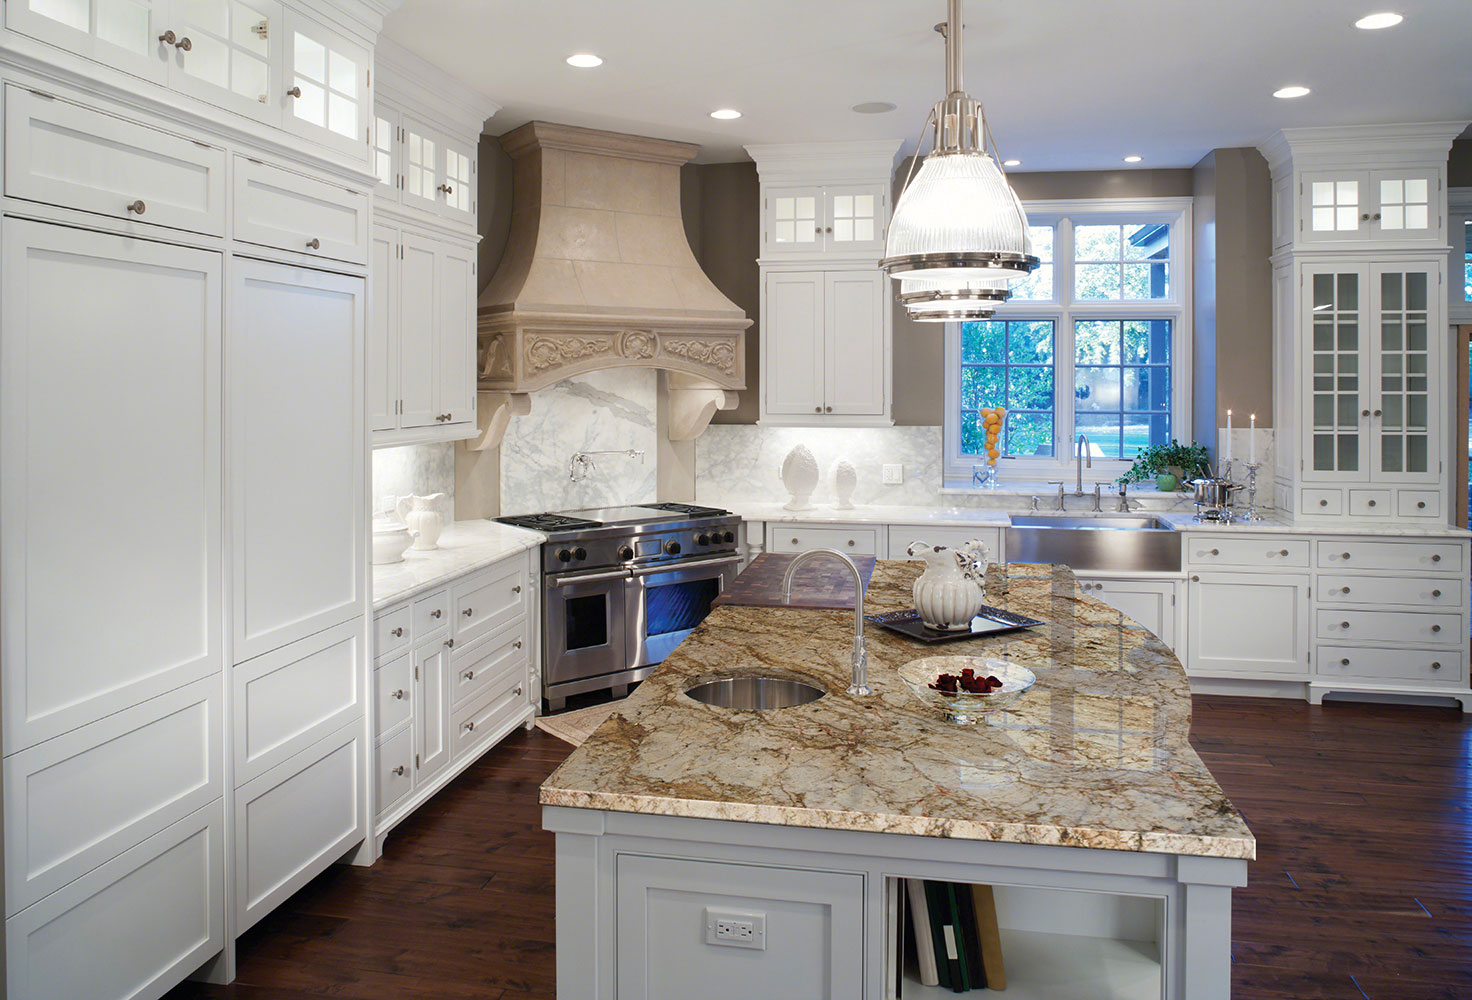 Crema Bordeaux Granite Kitchen 2015 Hot Kitchen Trends Part 1 Cabinets Countertops